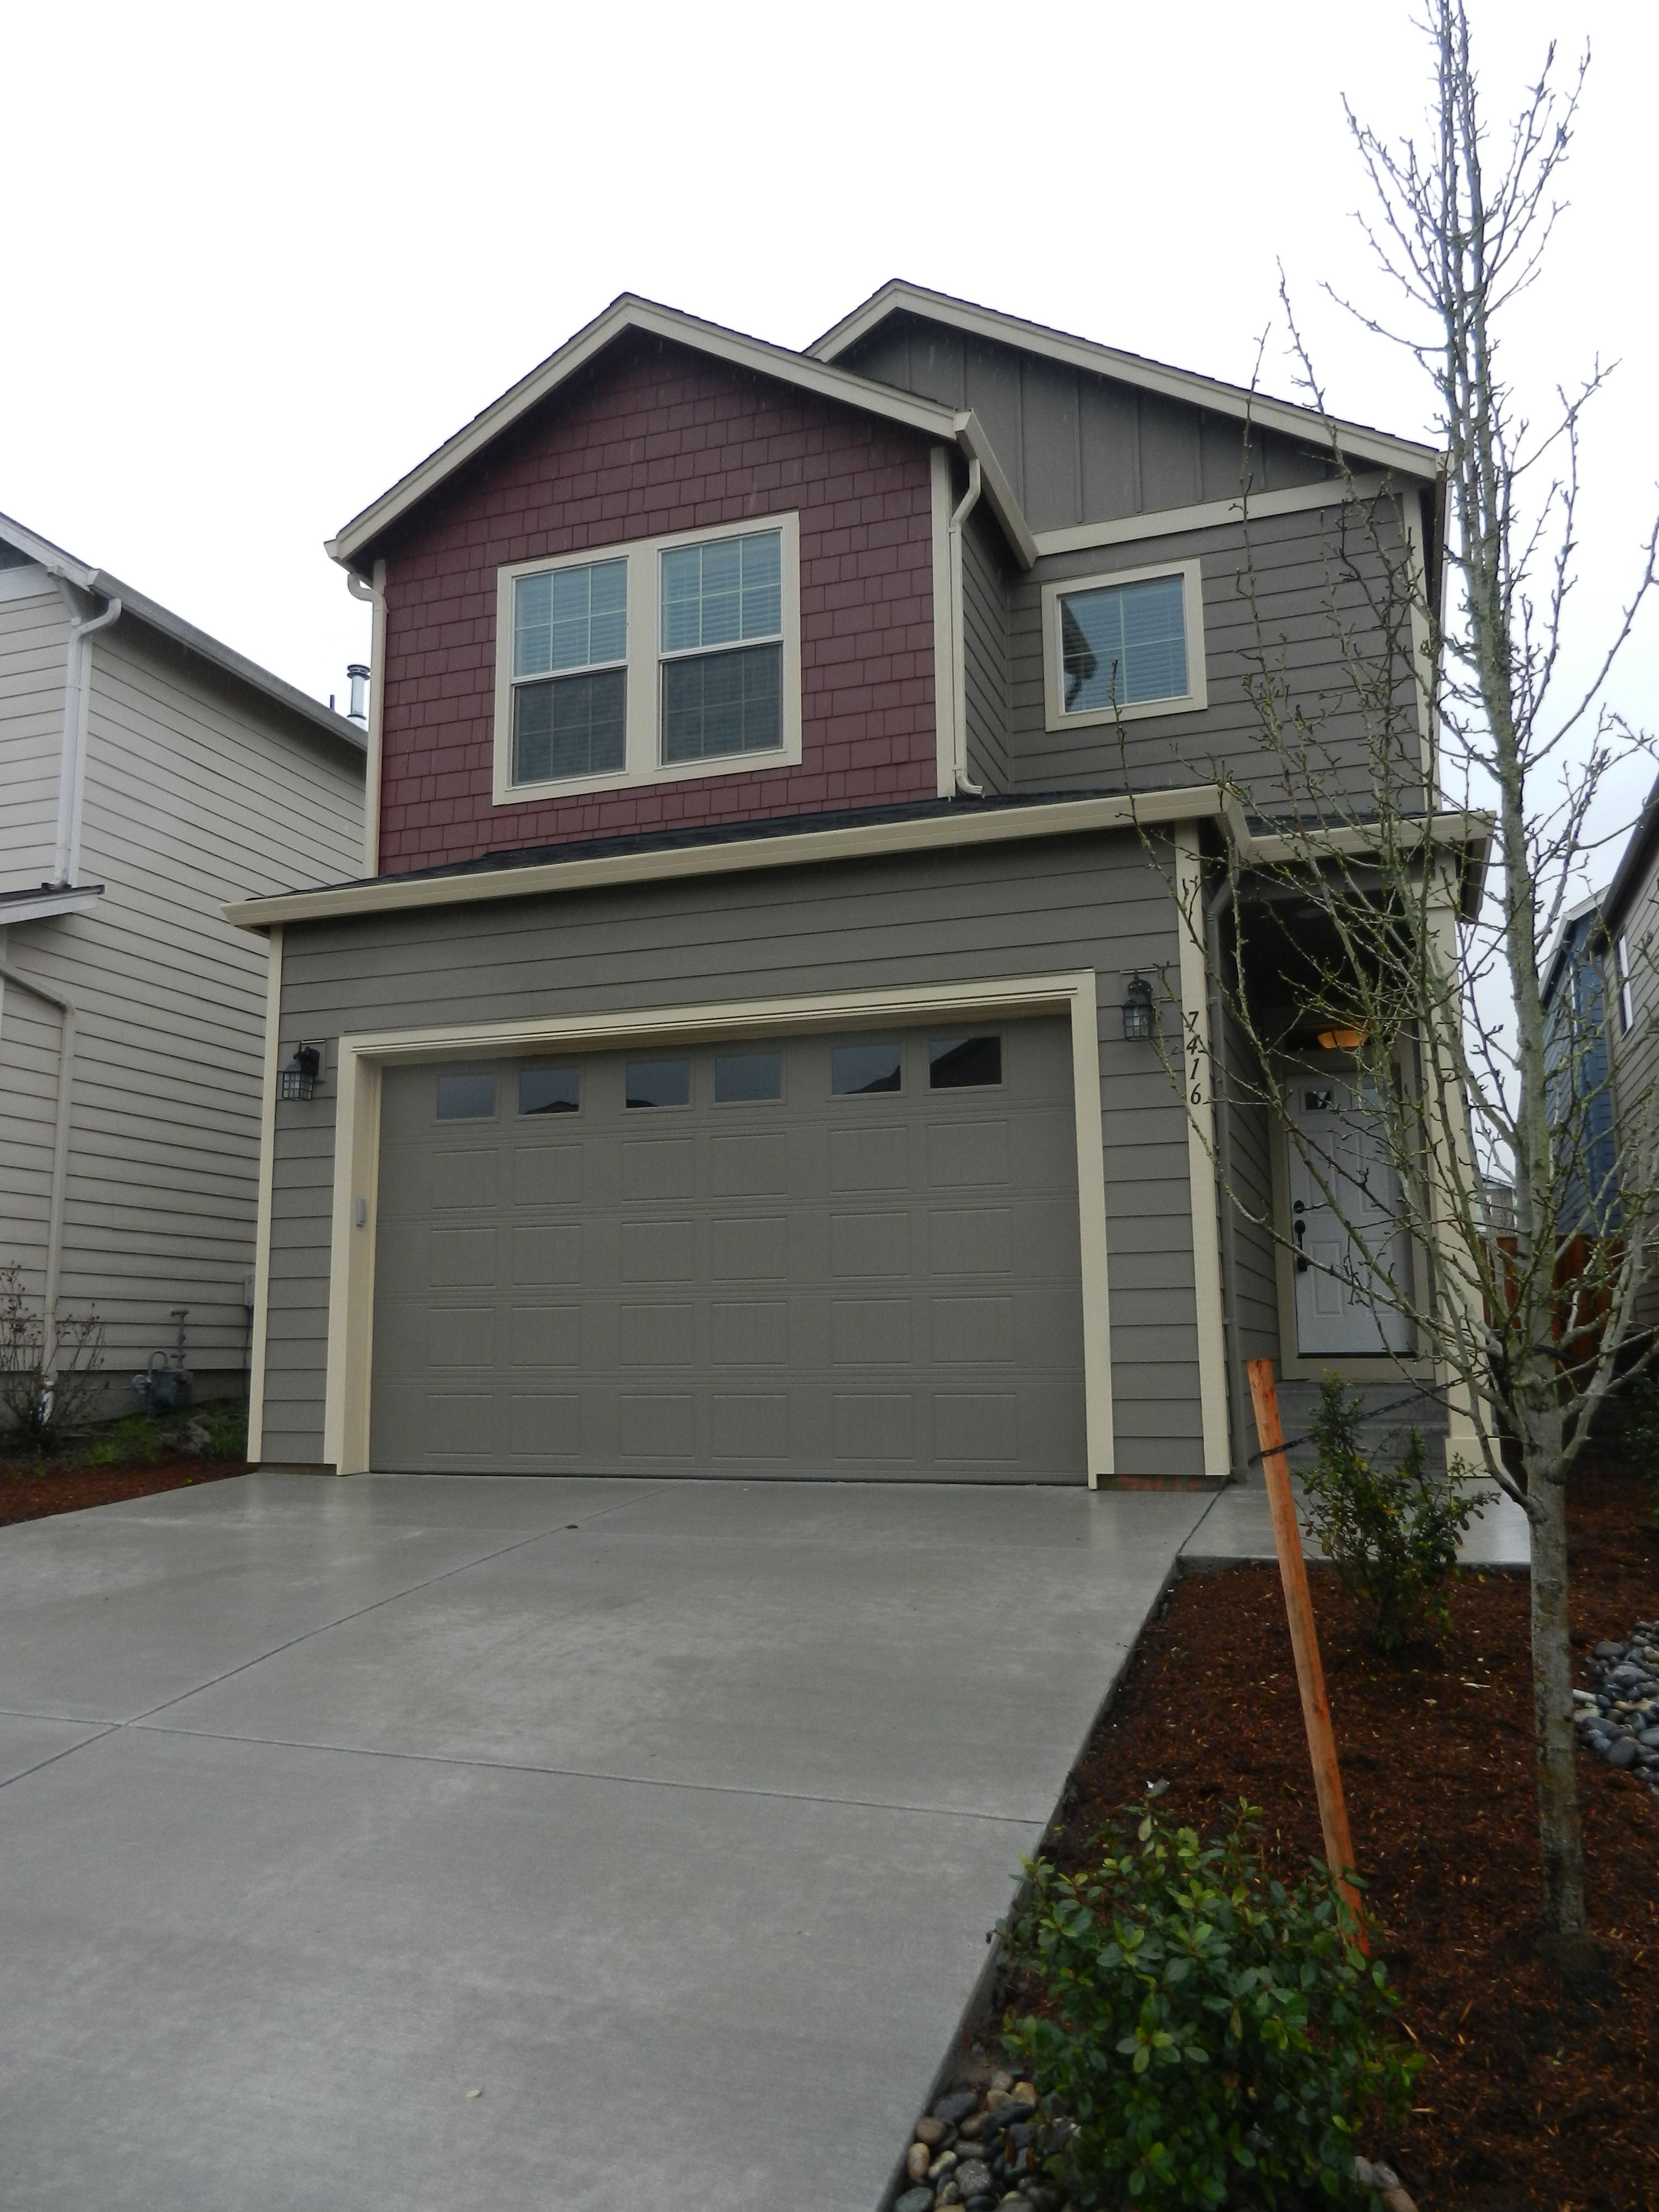 Walnut Village In Vancouver Wa Lovely Homes In Walnut Grove 3 Bedroom And 2 5 Bath Homes For Rent Call 360 8 Renting A House Property Management Property